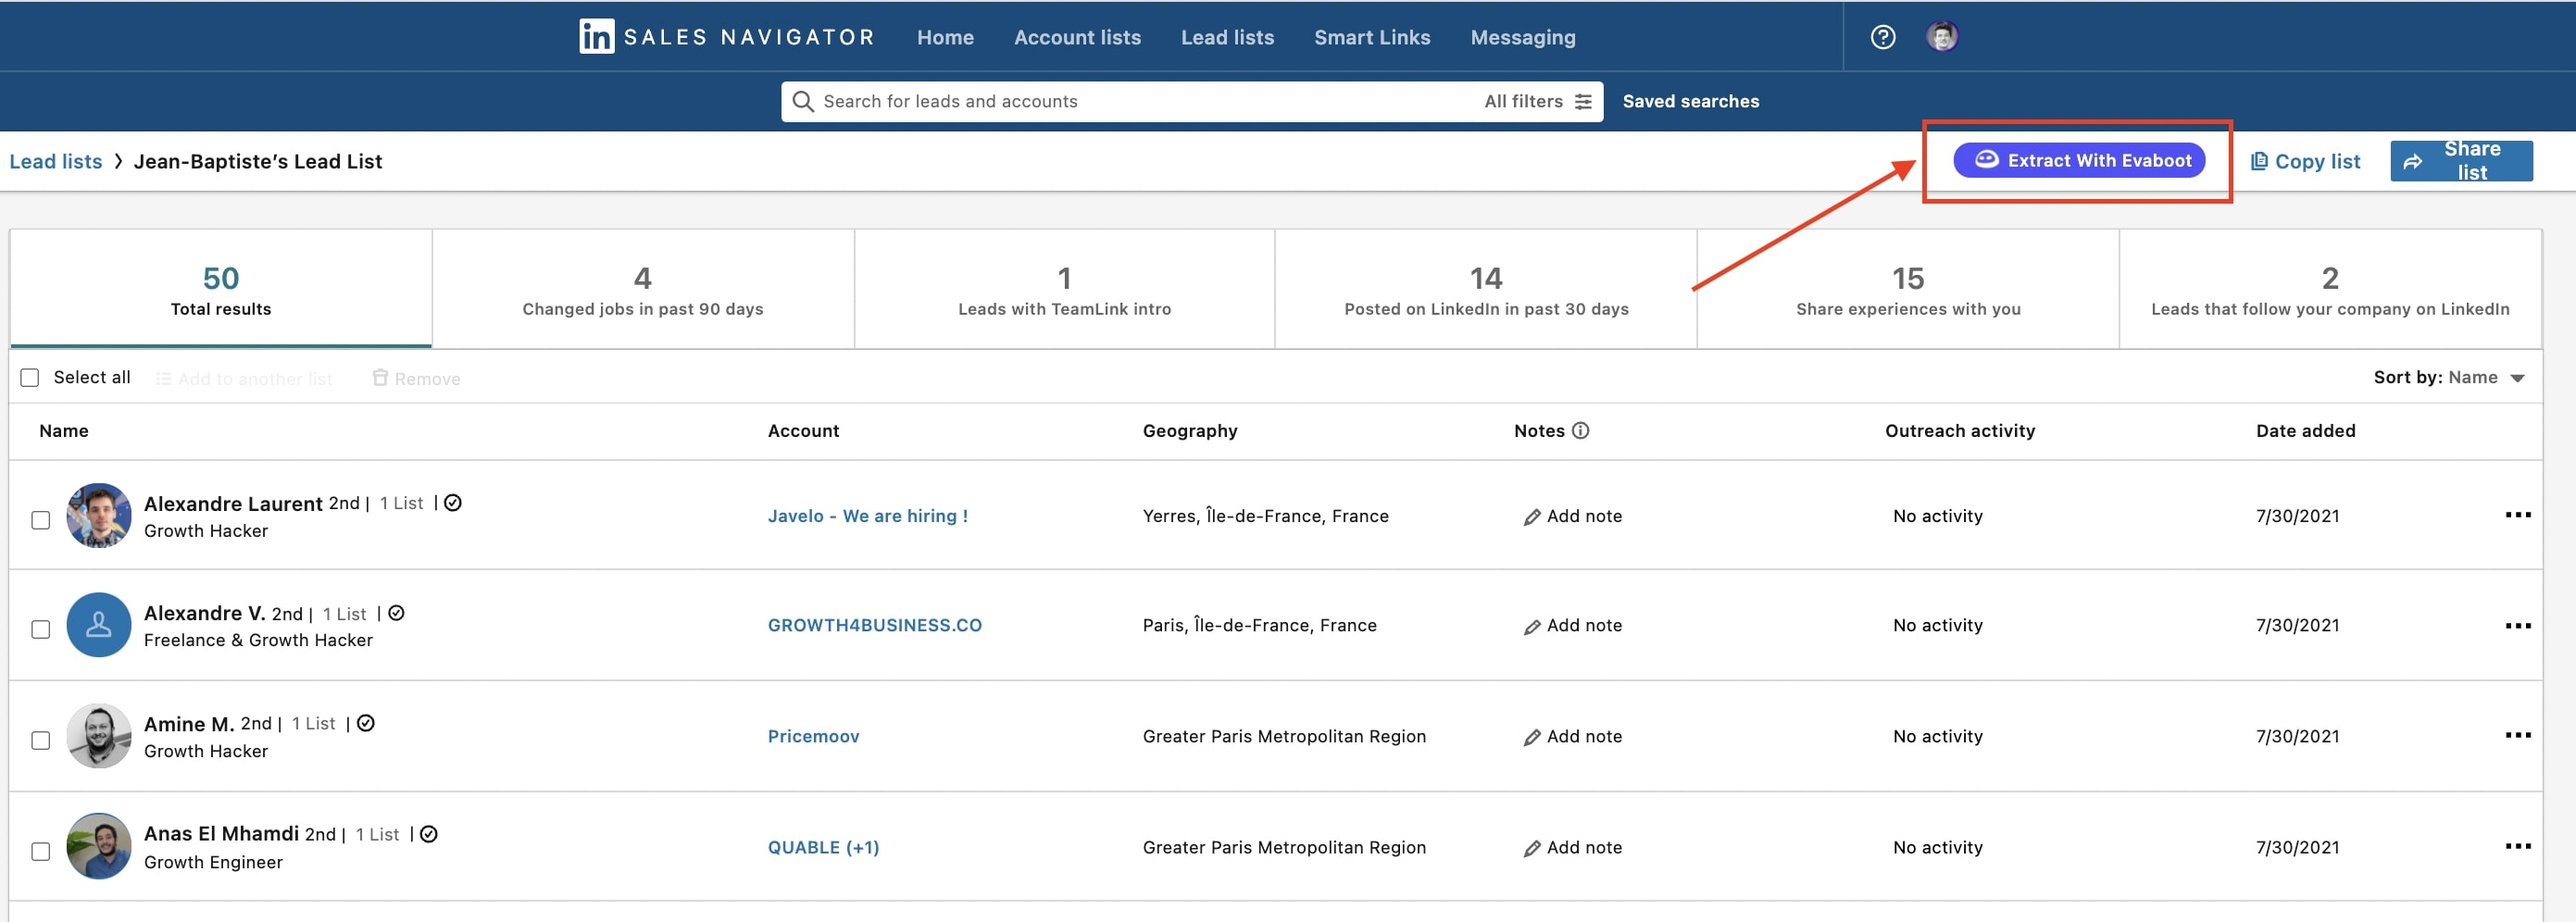 how to export list from linkedin sales navigator